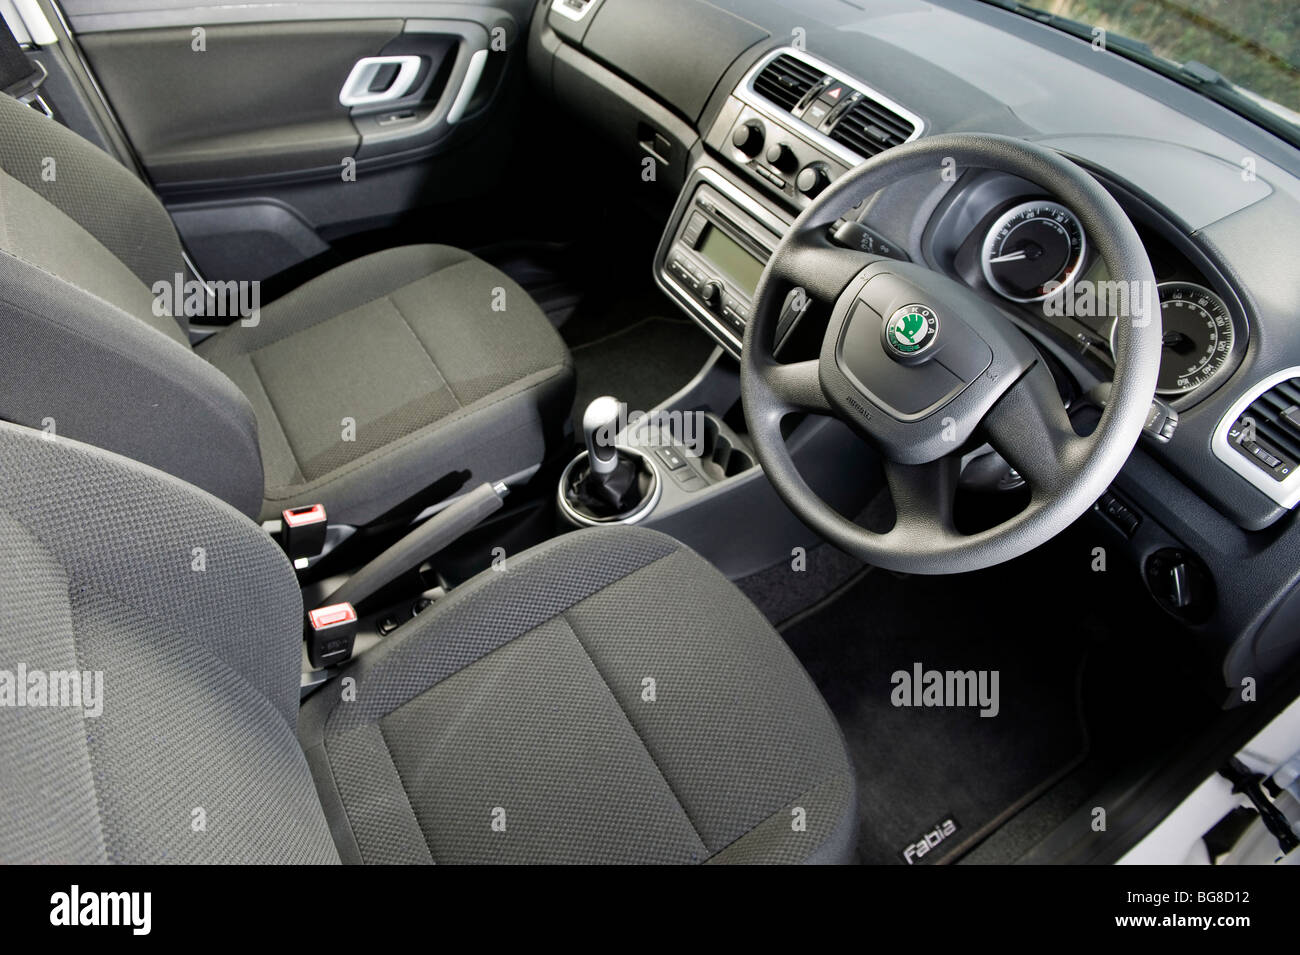 Skoda Diesel High Resolution Stock Photography And Images Alamy